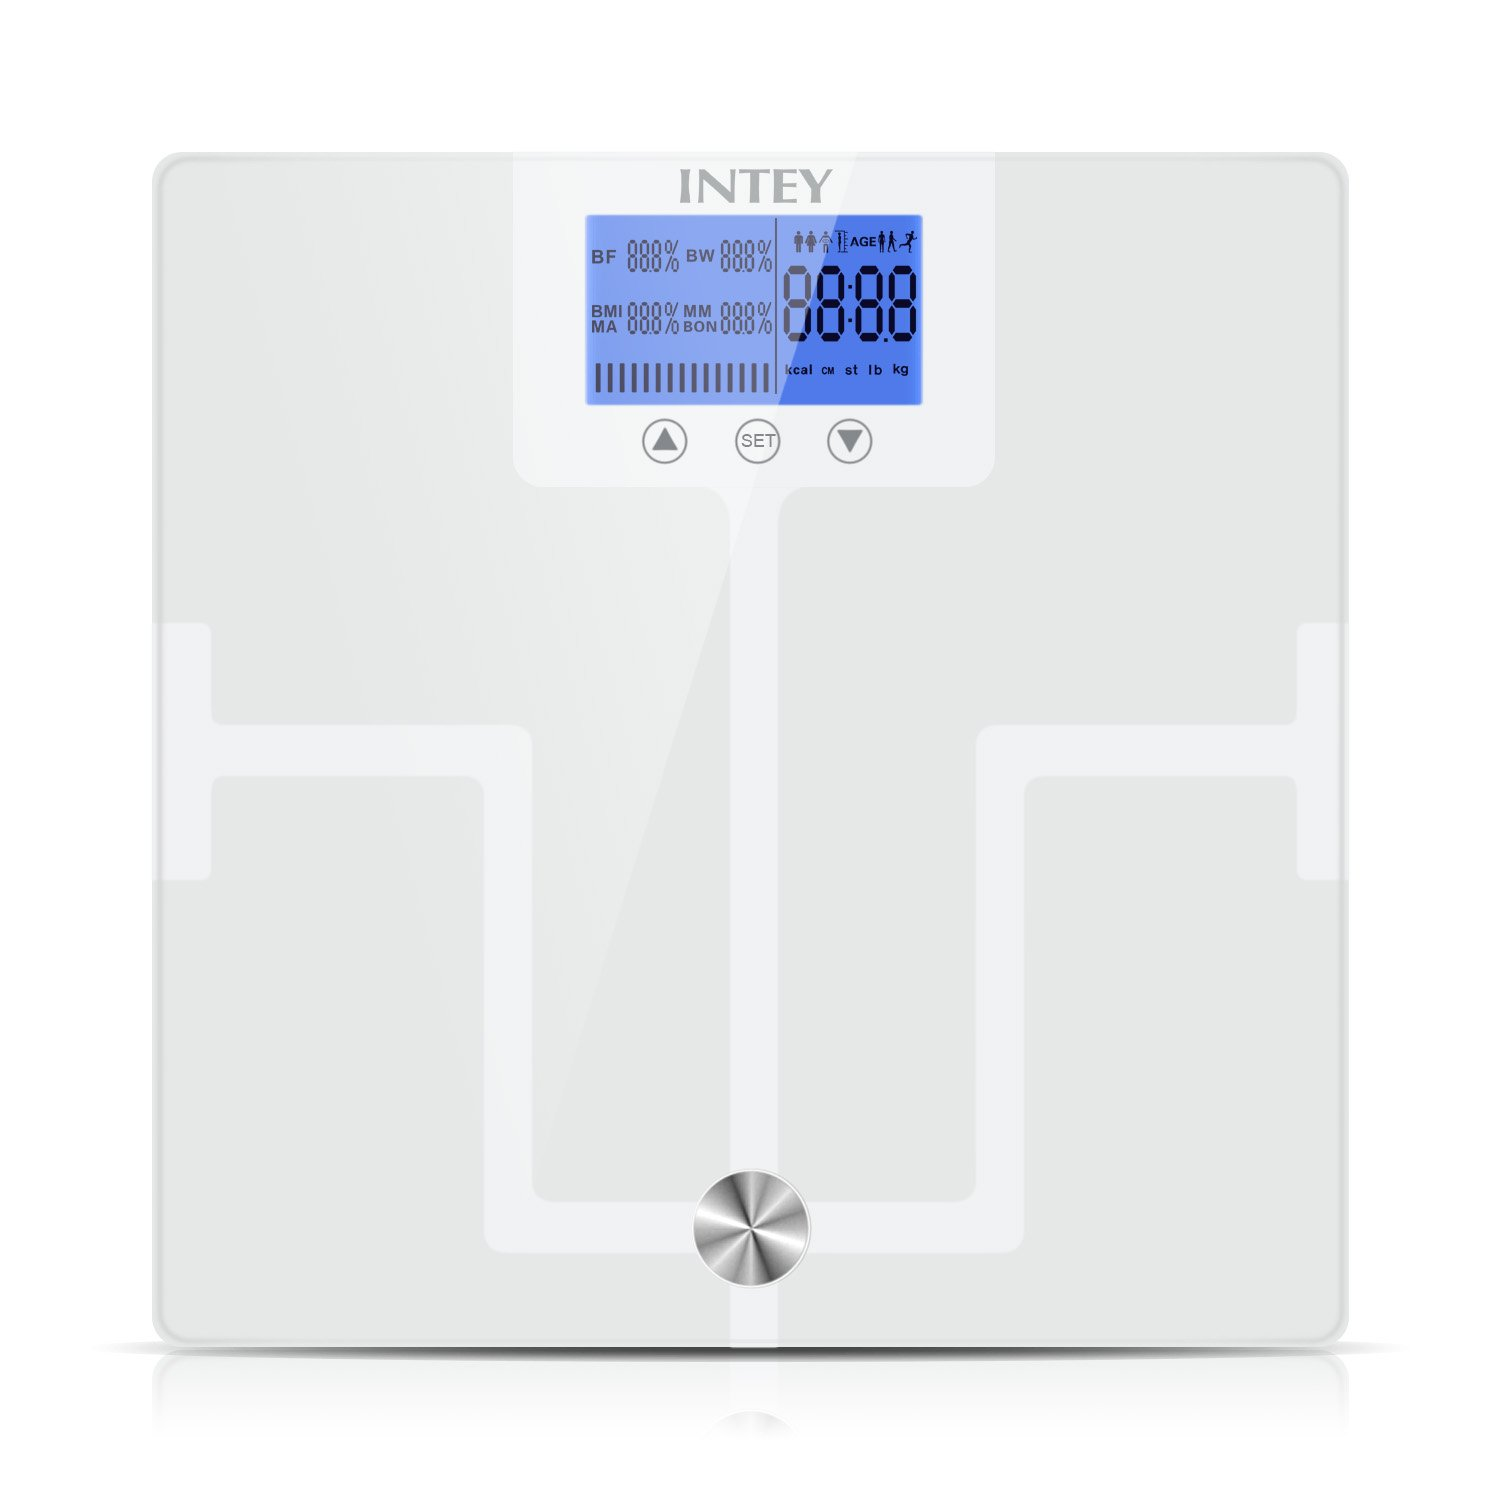 INTEY Body Fat Scale, Body Composition Monitor of Body Weight, Fat, BMI, Water, Muscle, BMR, Bone Mass, Analyzer with Large Backlit LCD Display (white)